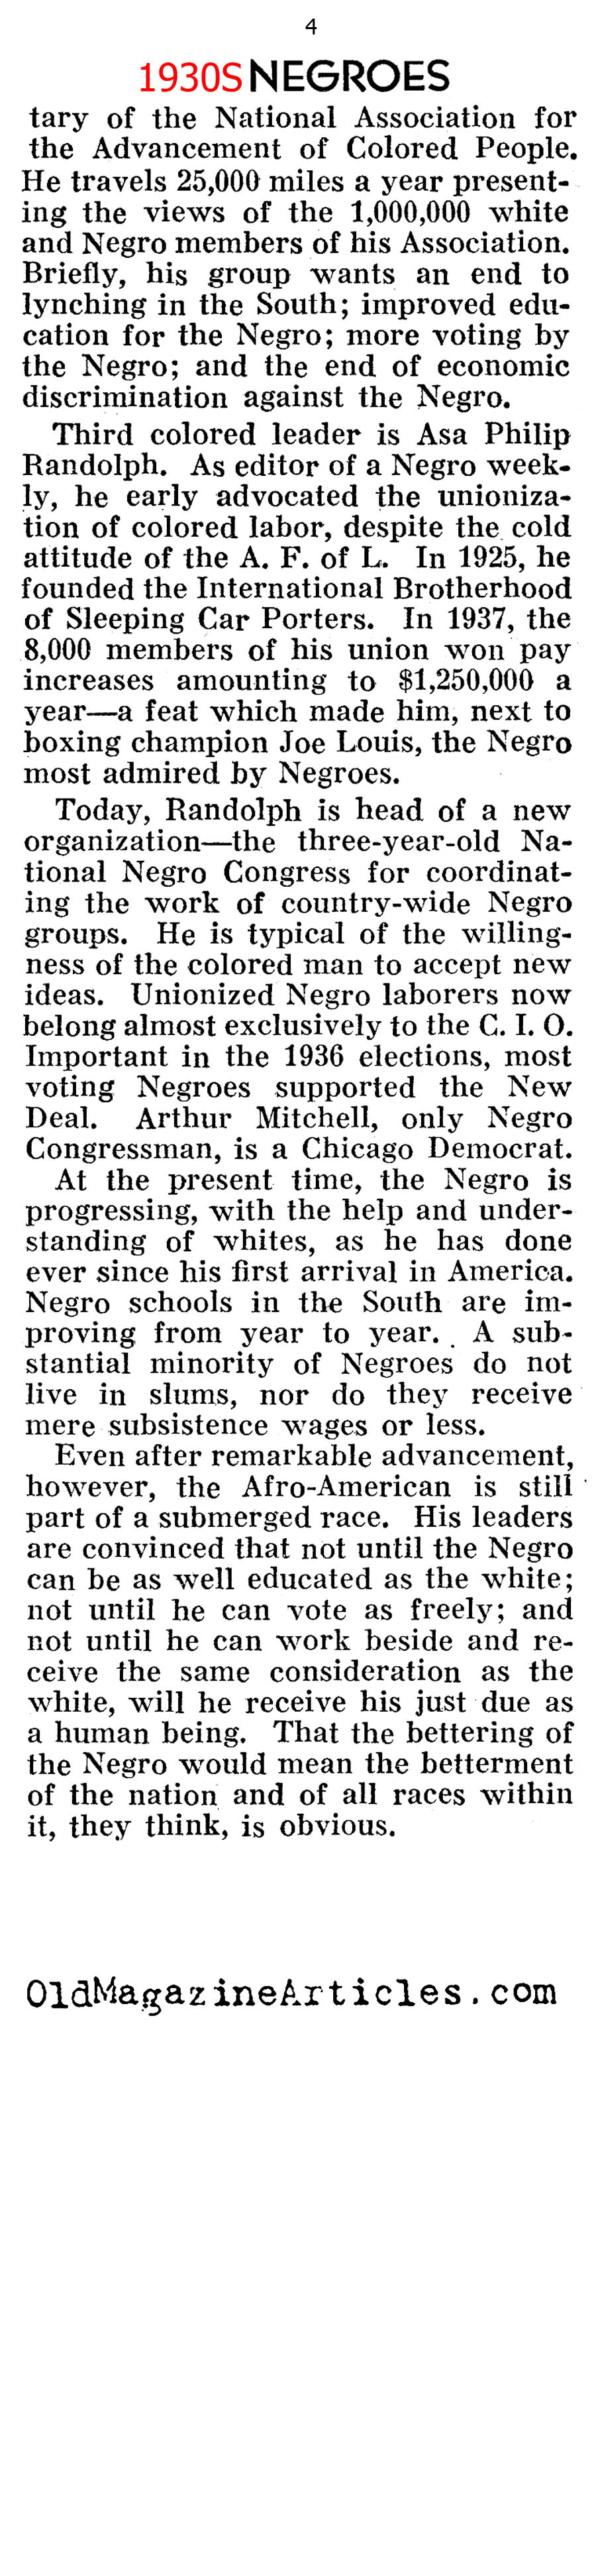 African-Americans During the Great Depression (Pathfinder Magazine, 1939)